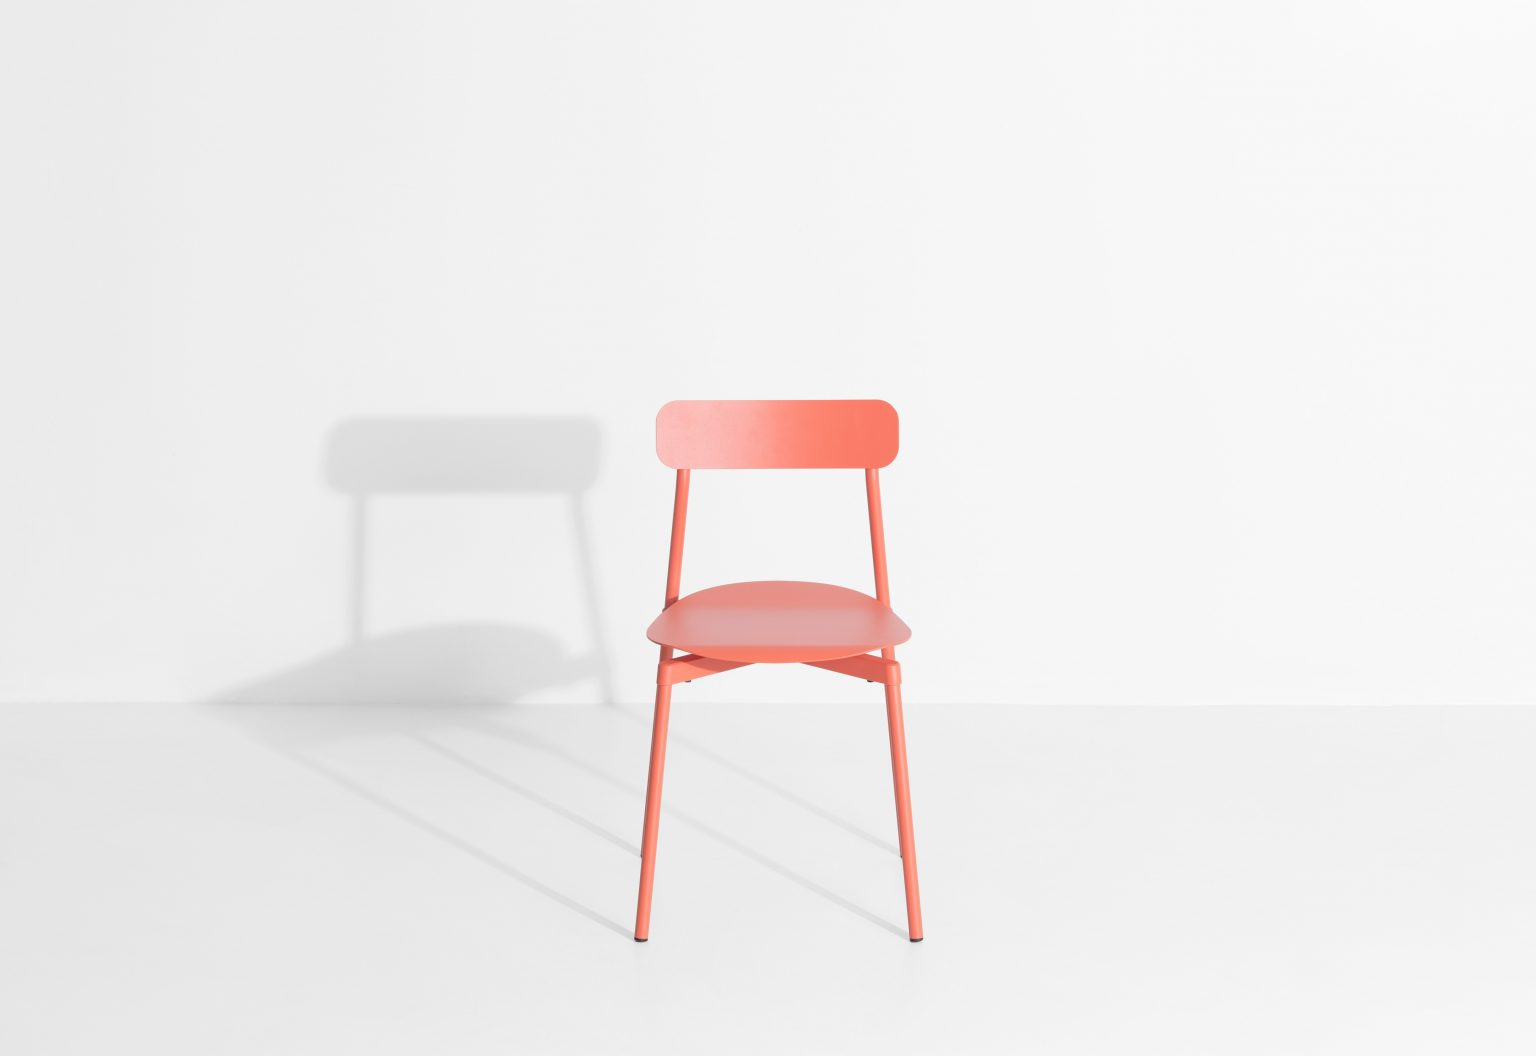 Biennale Interieur - Belgium's leading design and interior event - M0810105_fromme_chair_coral_©pf_packshot_hd-5.jpg